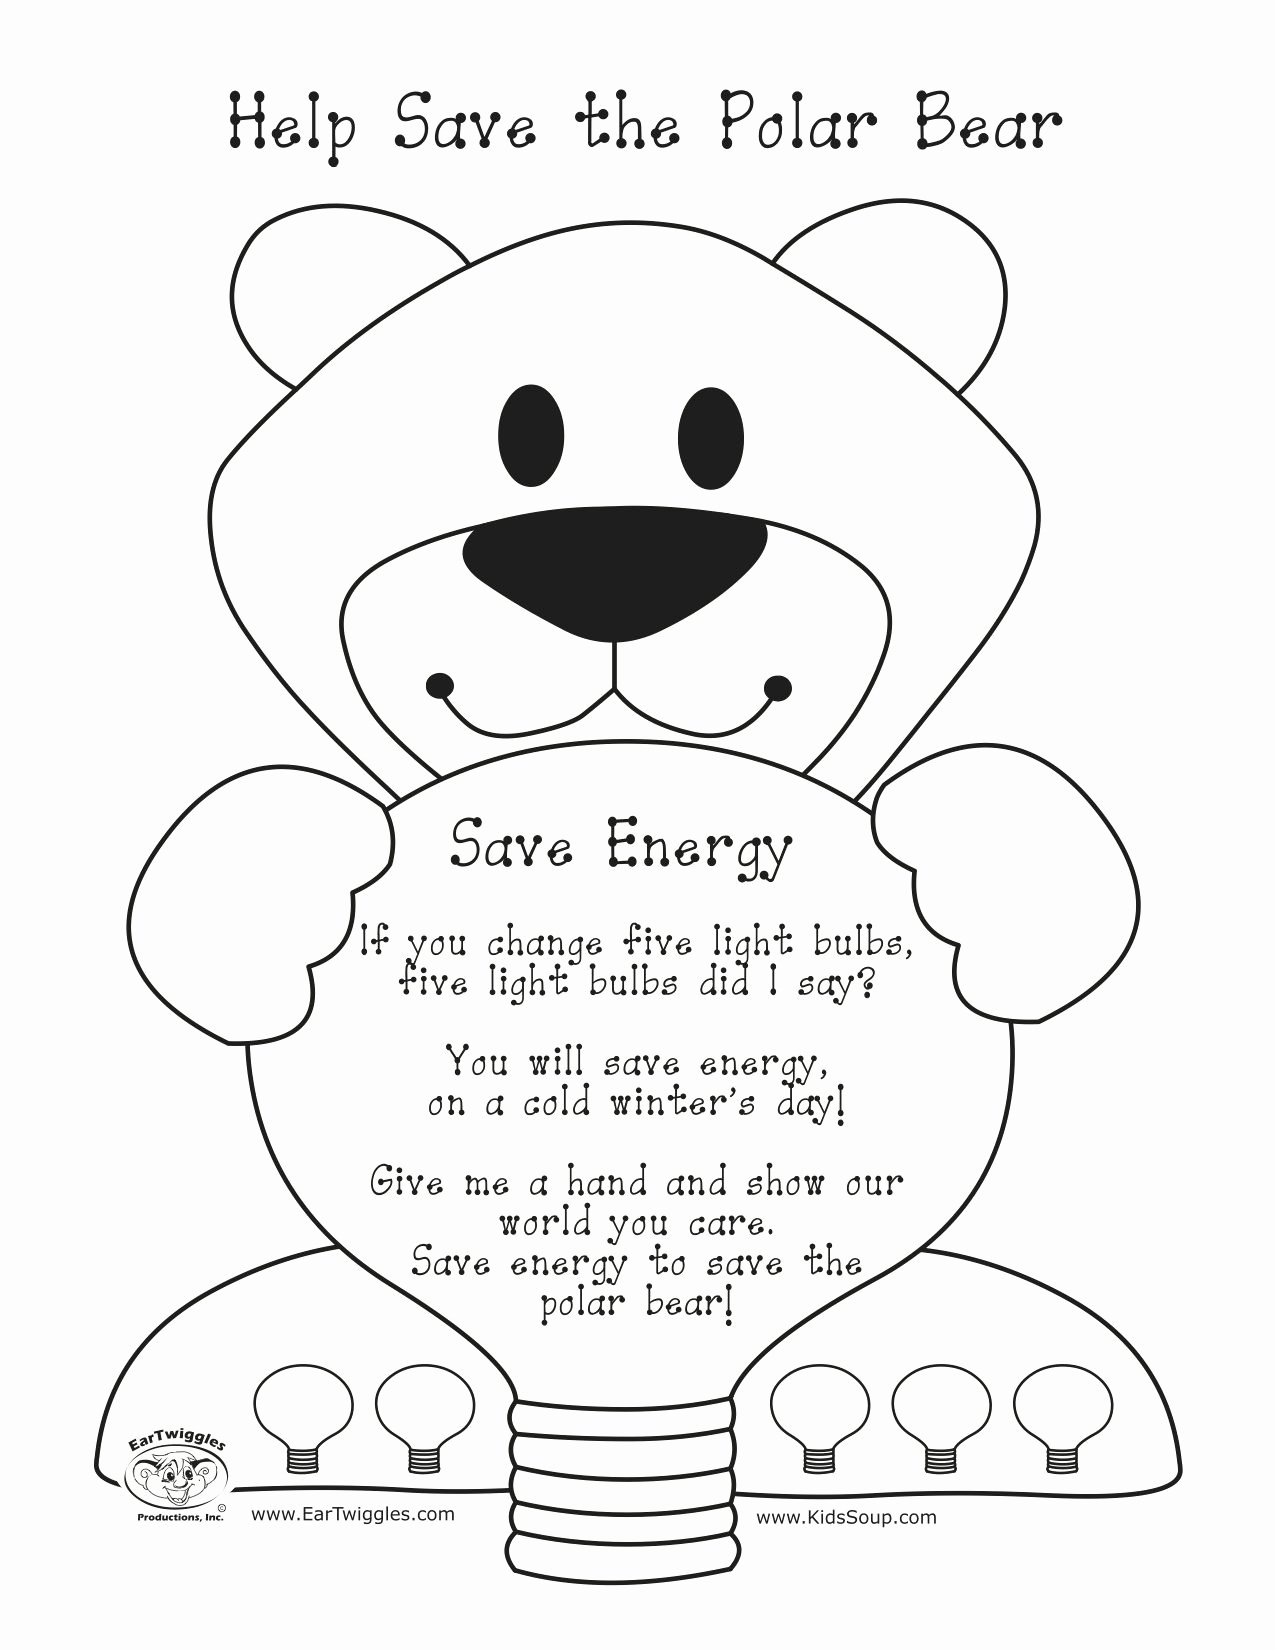 Polar Bear Worksheets for Preschoolers Awesome Polar Bear Worksheets Kindergarten Article Sequencing with